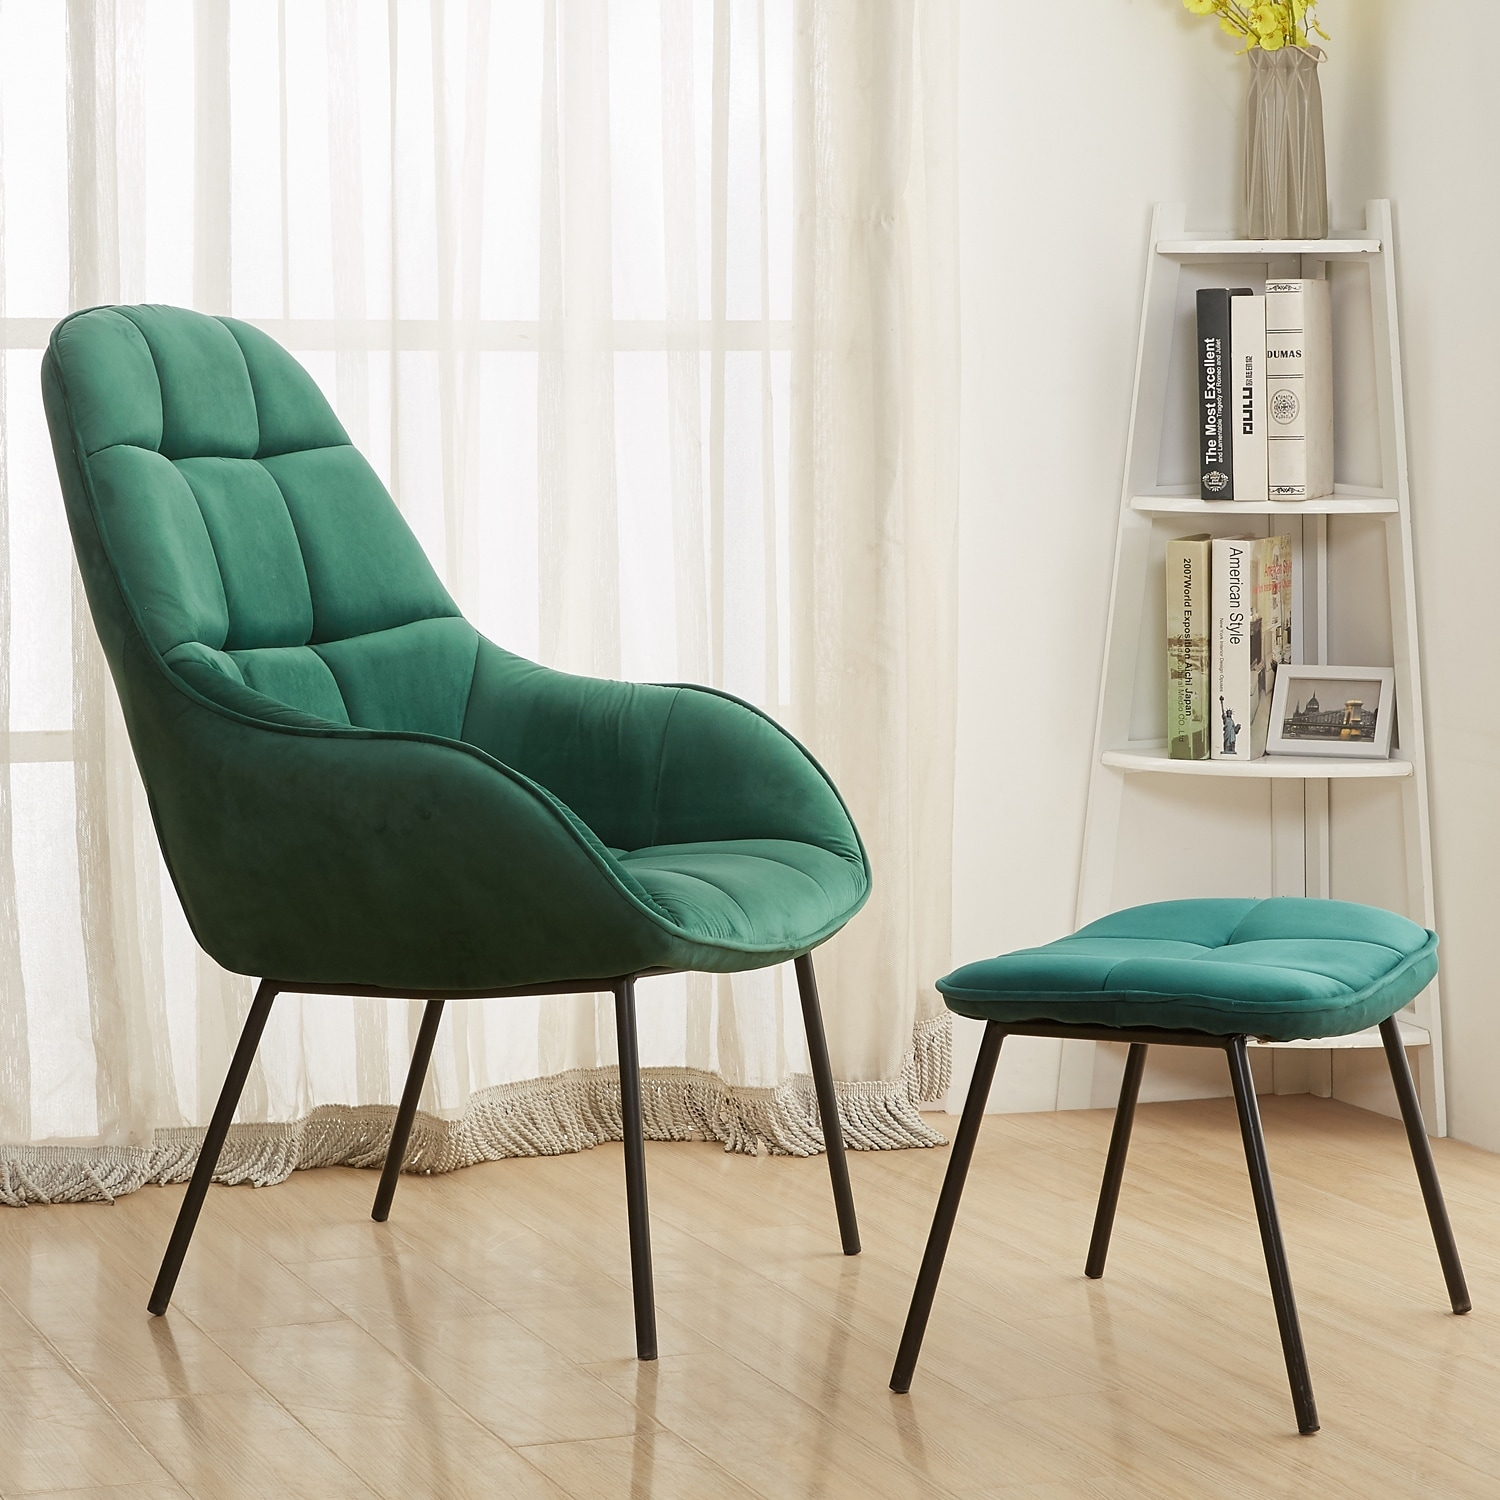 . VECELO Living Room Velvet Fabric Arm Chairs  Sofa Chairs with Ottoman Metal  Frame